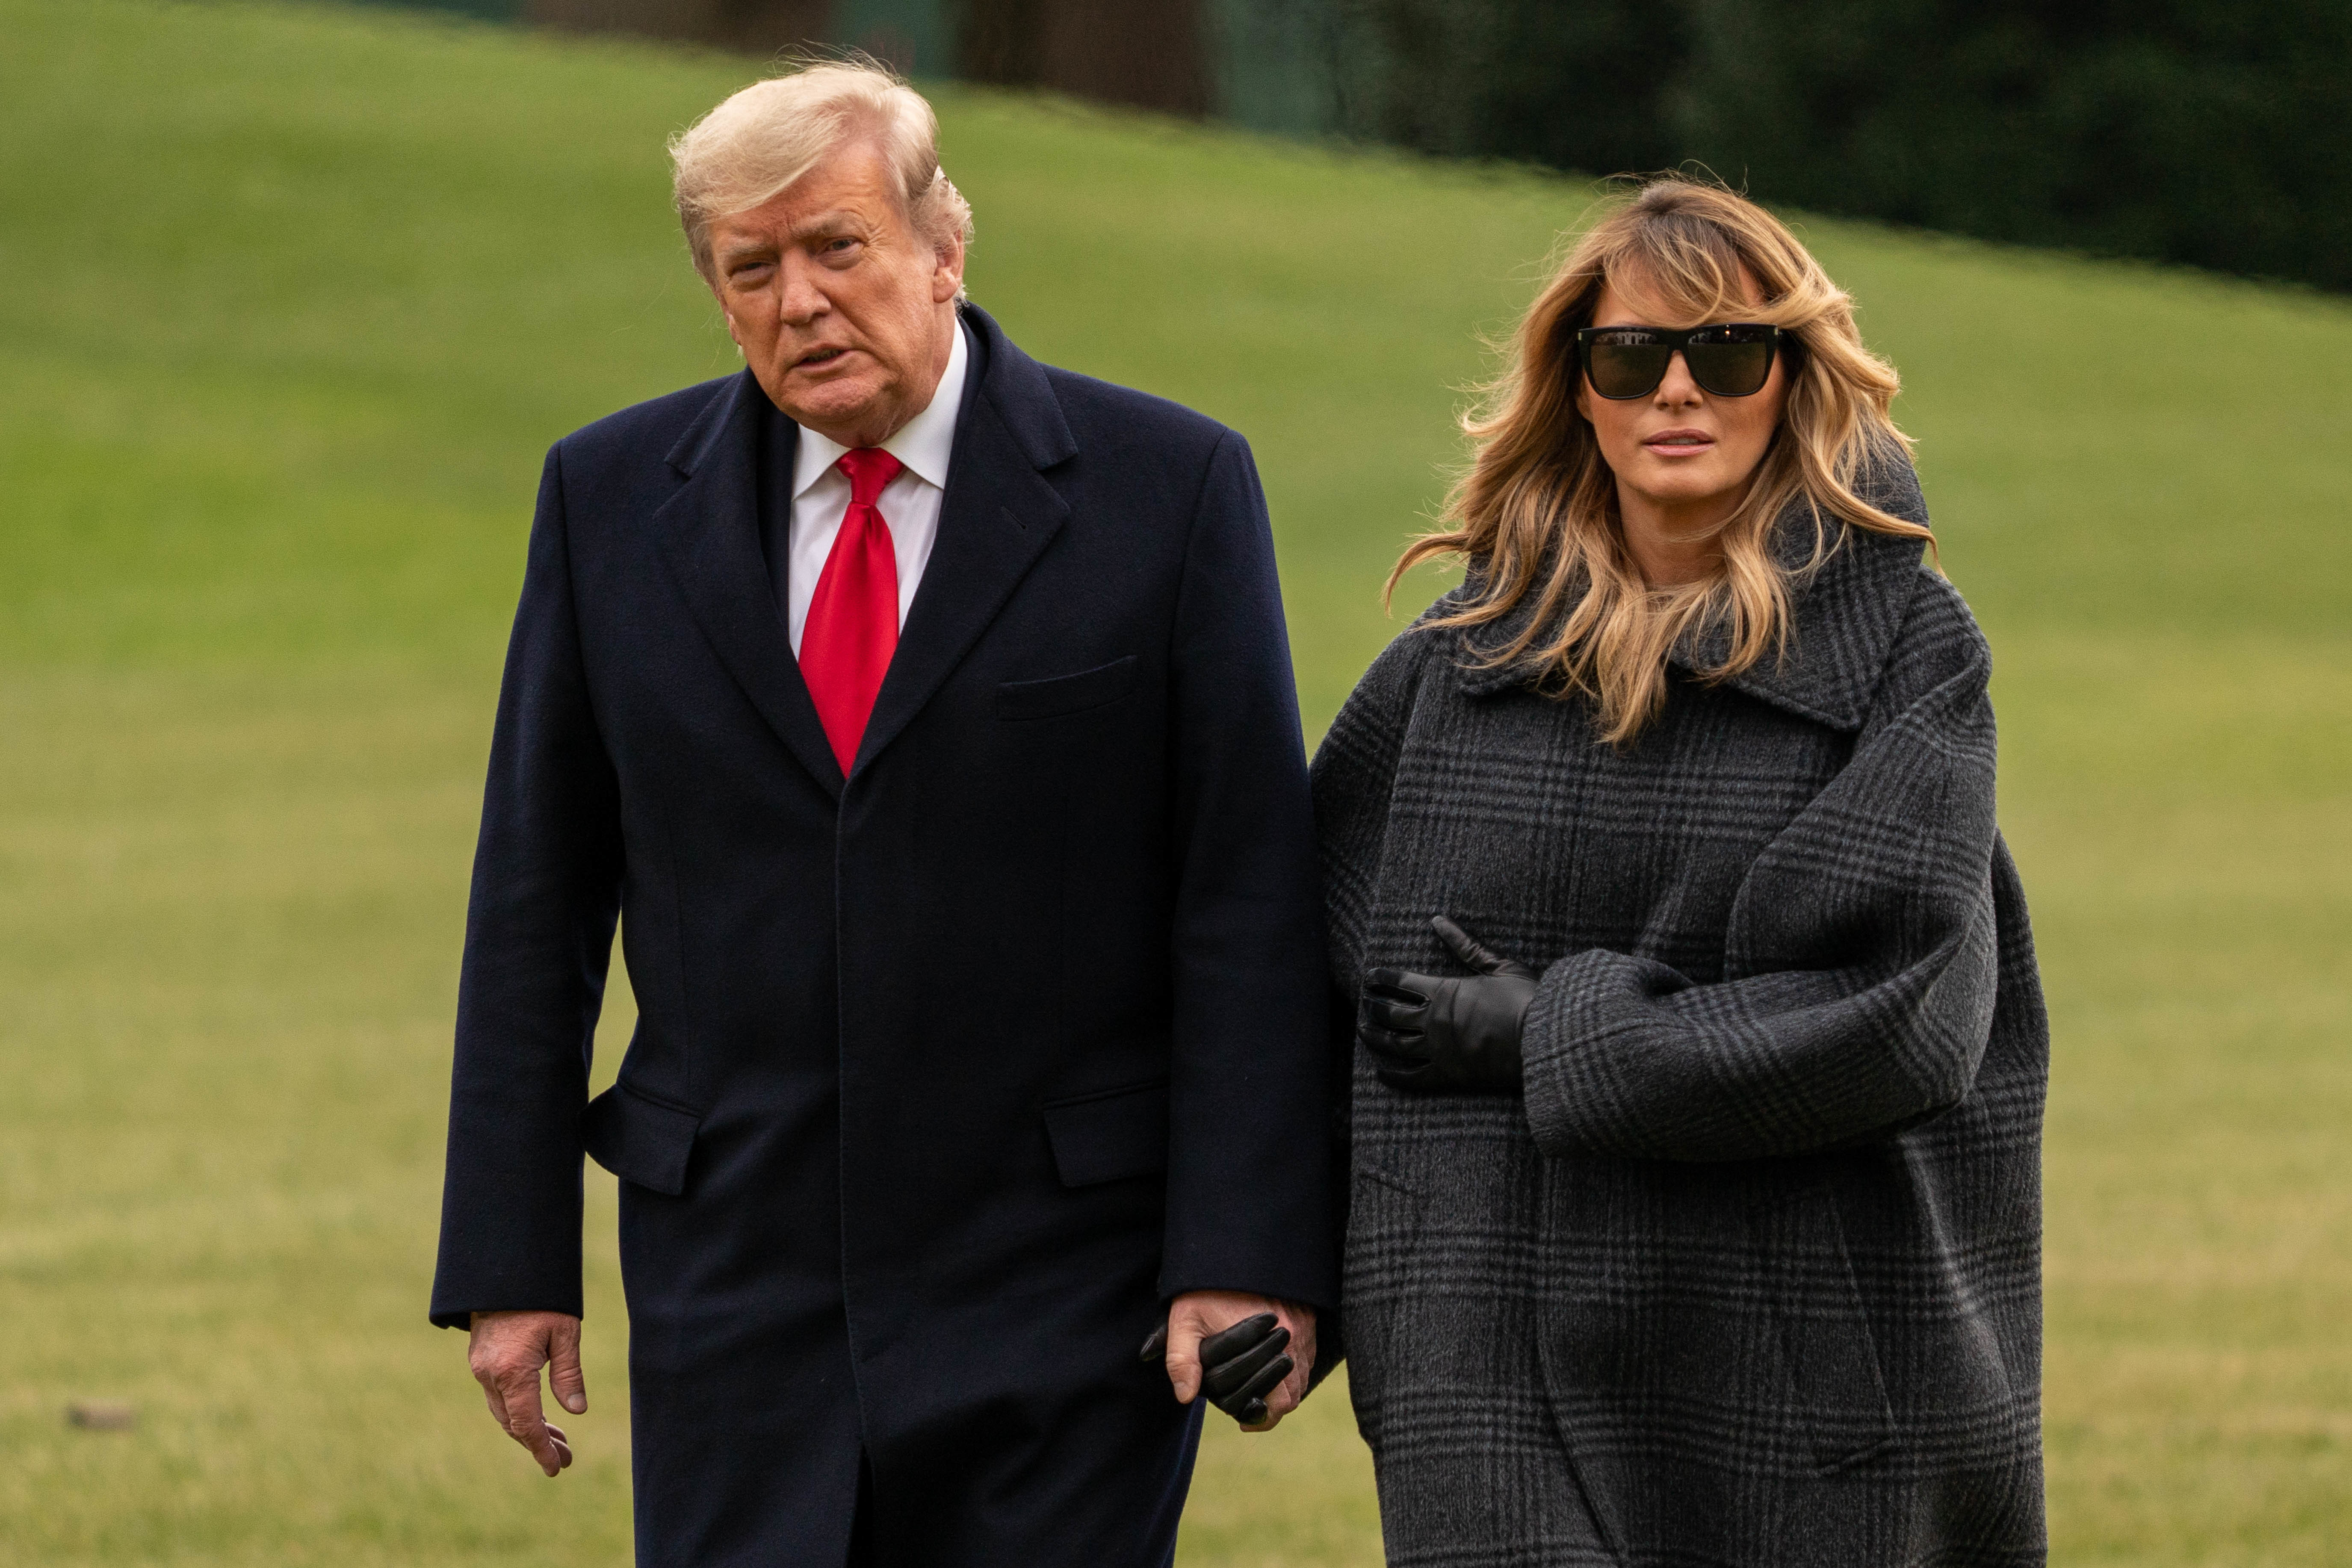 United States President Donald J. Trump and first lady Melania Trump